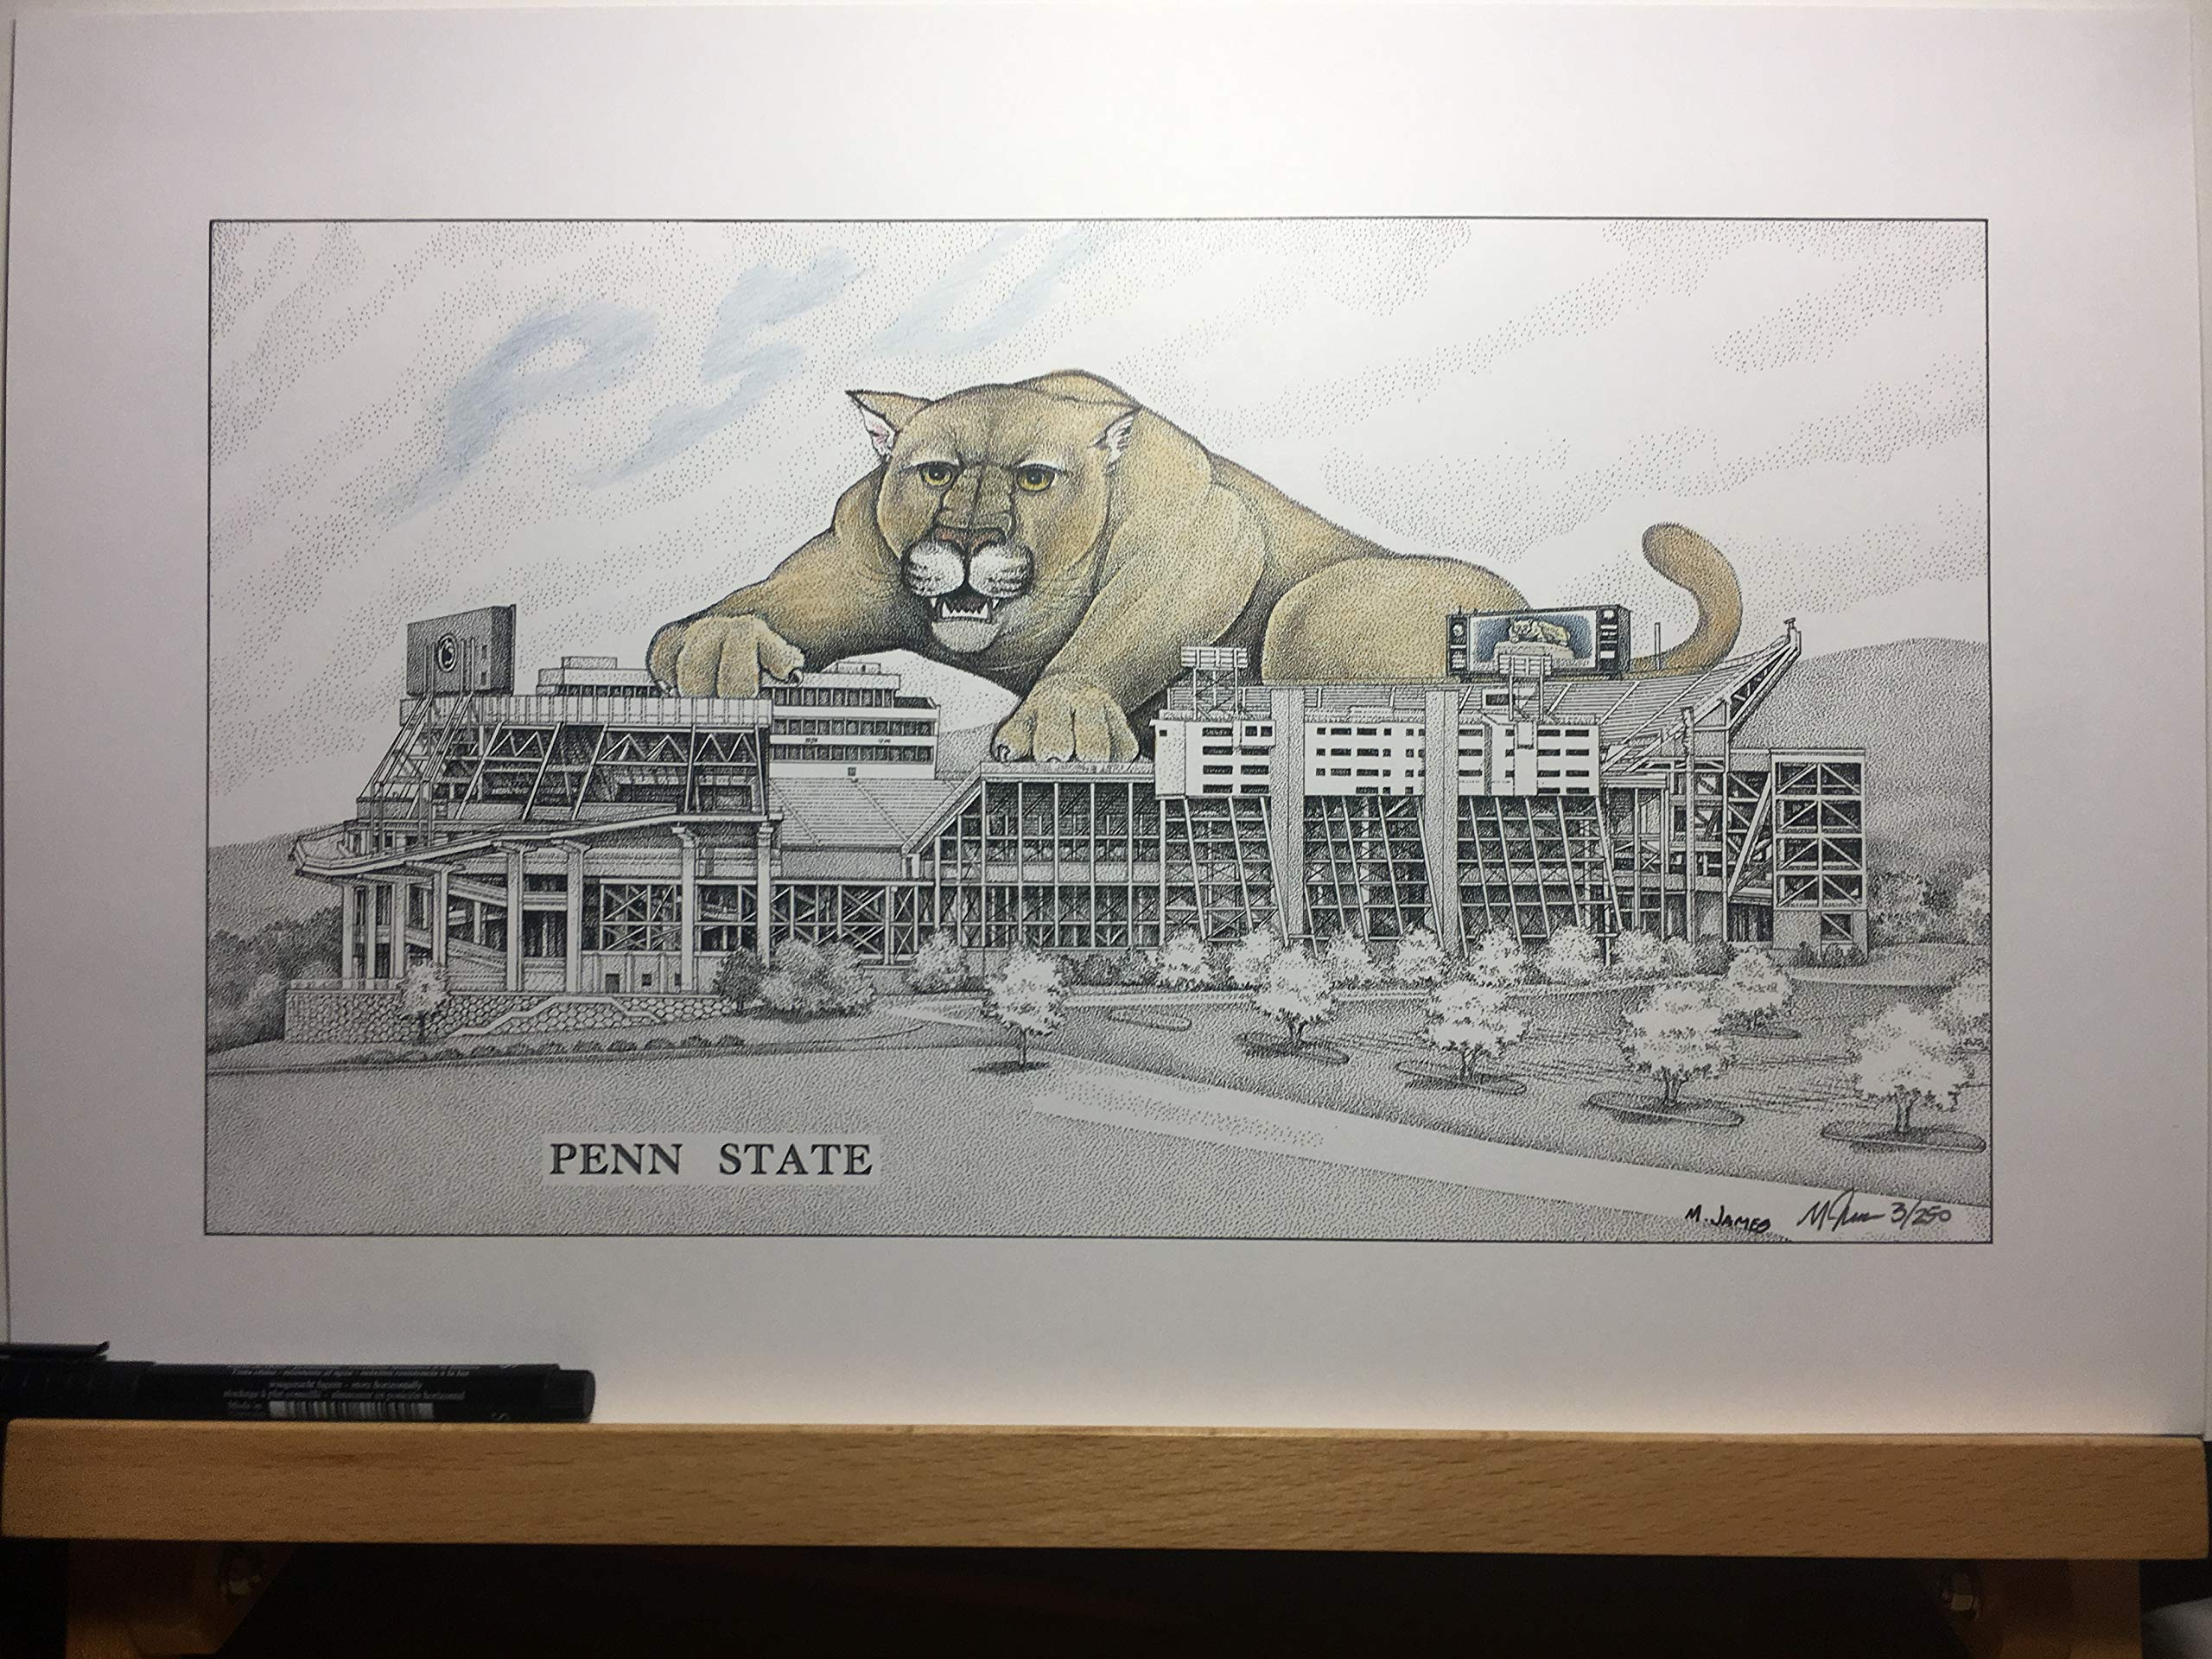 Penn State football stadium with hand-colored lion-11''x17'' pen & ink drawing